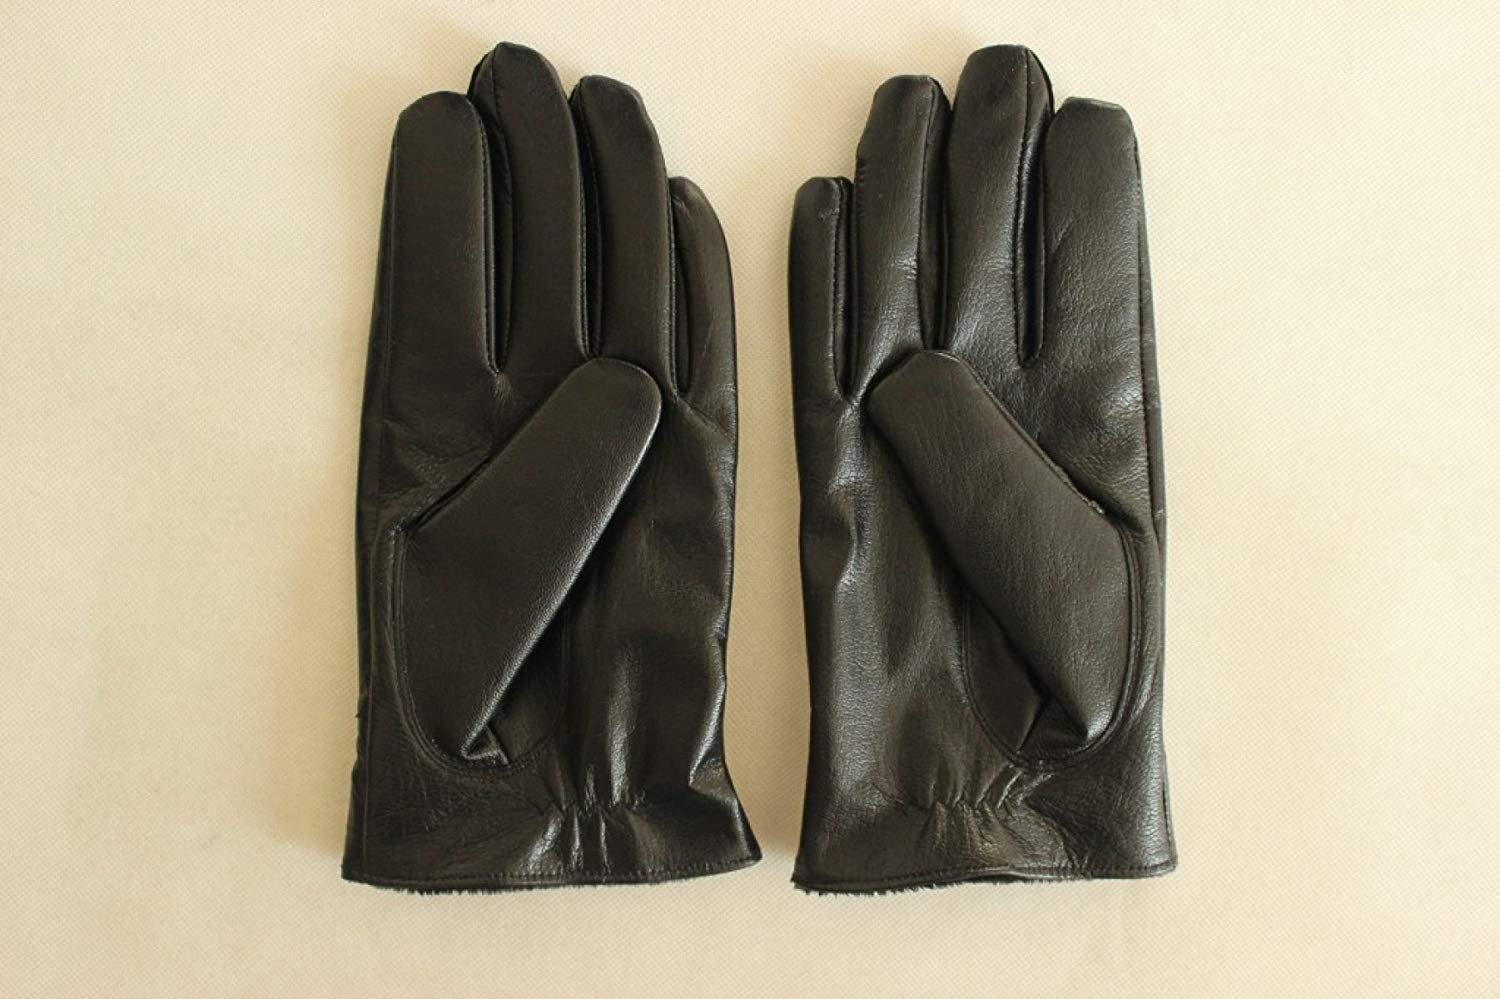 CWJ Men's Gloves Thick Drive Car Ride Warm,Black,One Size by CWJ (Image #3)